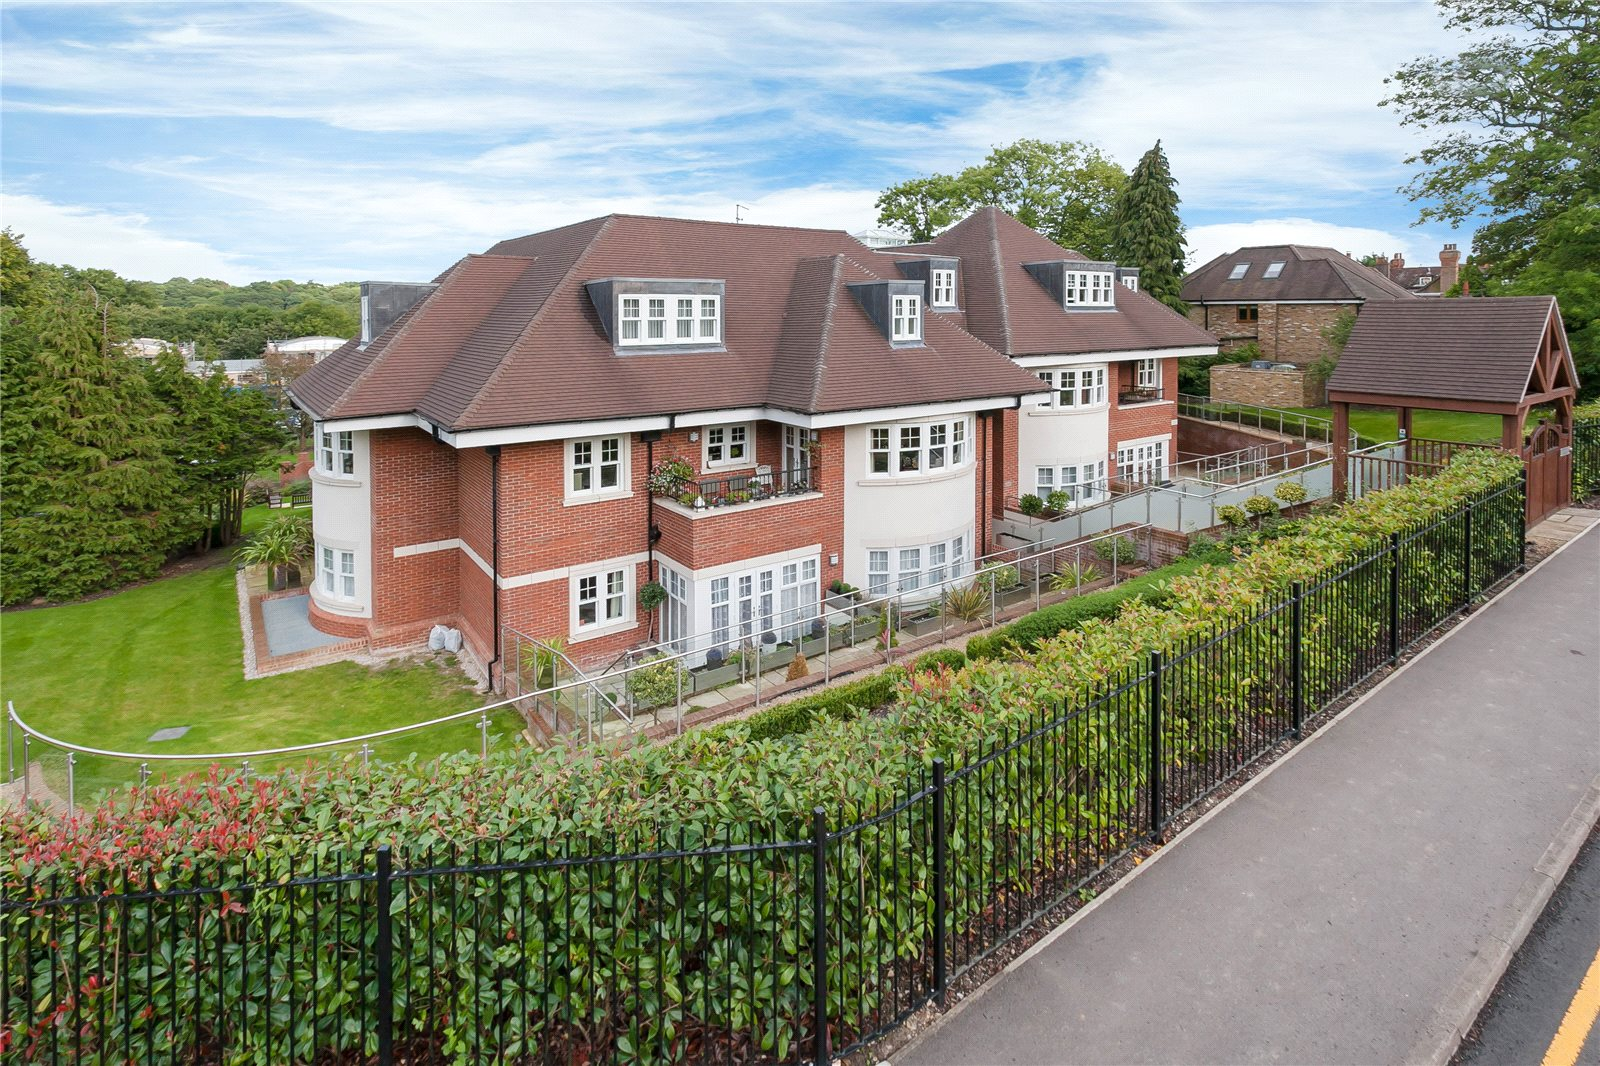 Apartments / Residences for Sale at Baytrees, 20 South Park View, Gerrards Cross, Buckinghamshire, SL9 Gerrards Cross, England